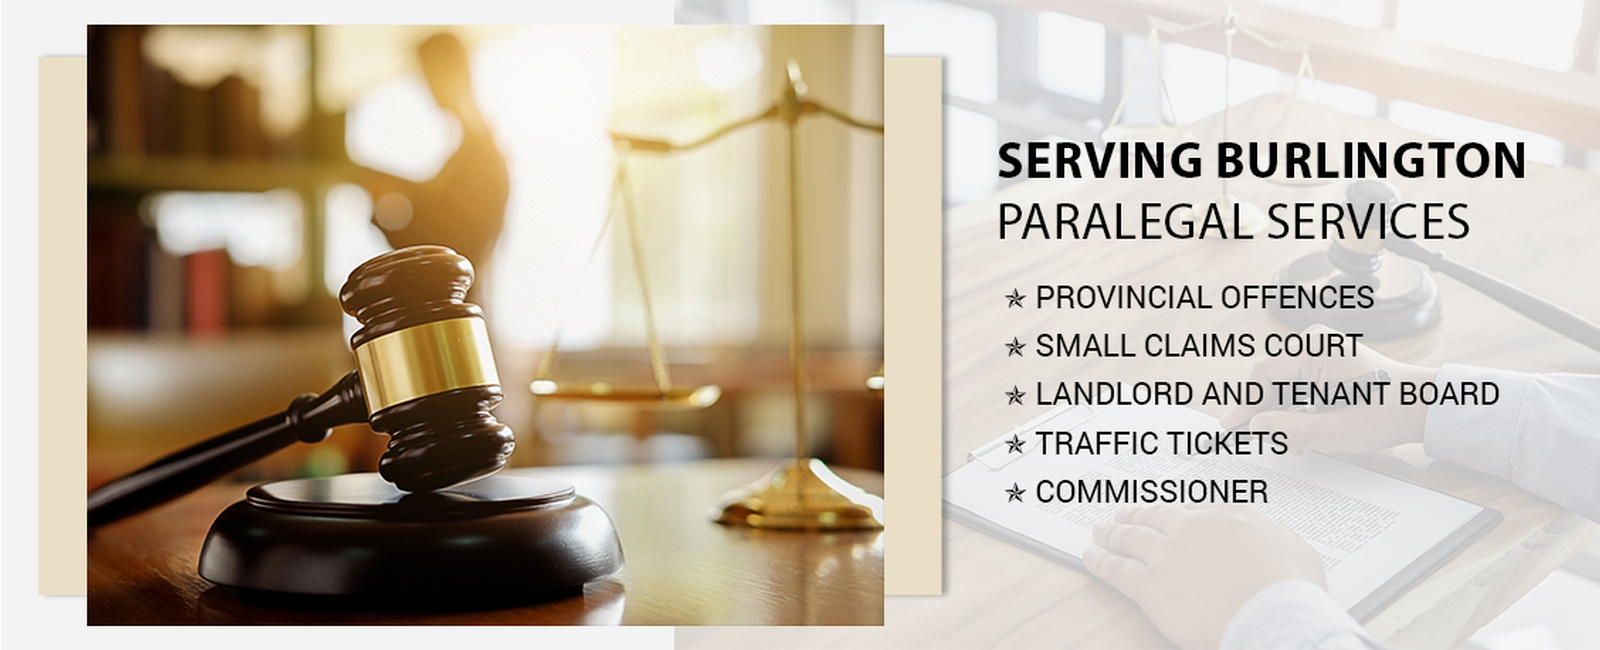 Paralegal services in Burlington